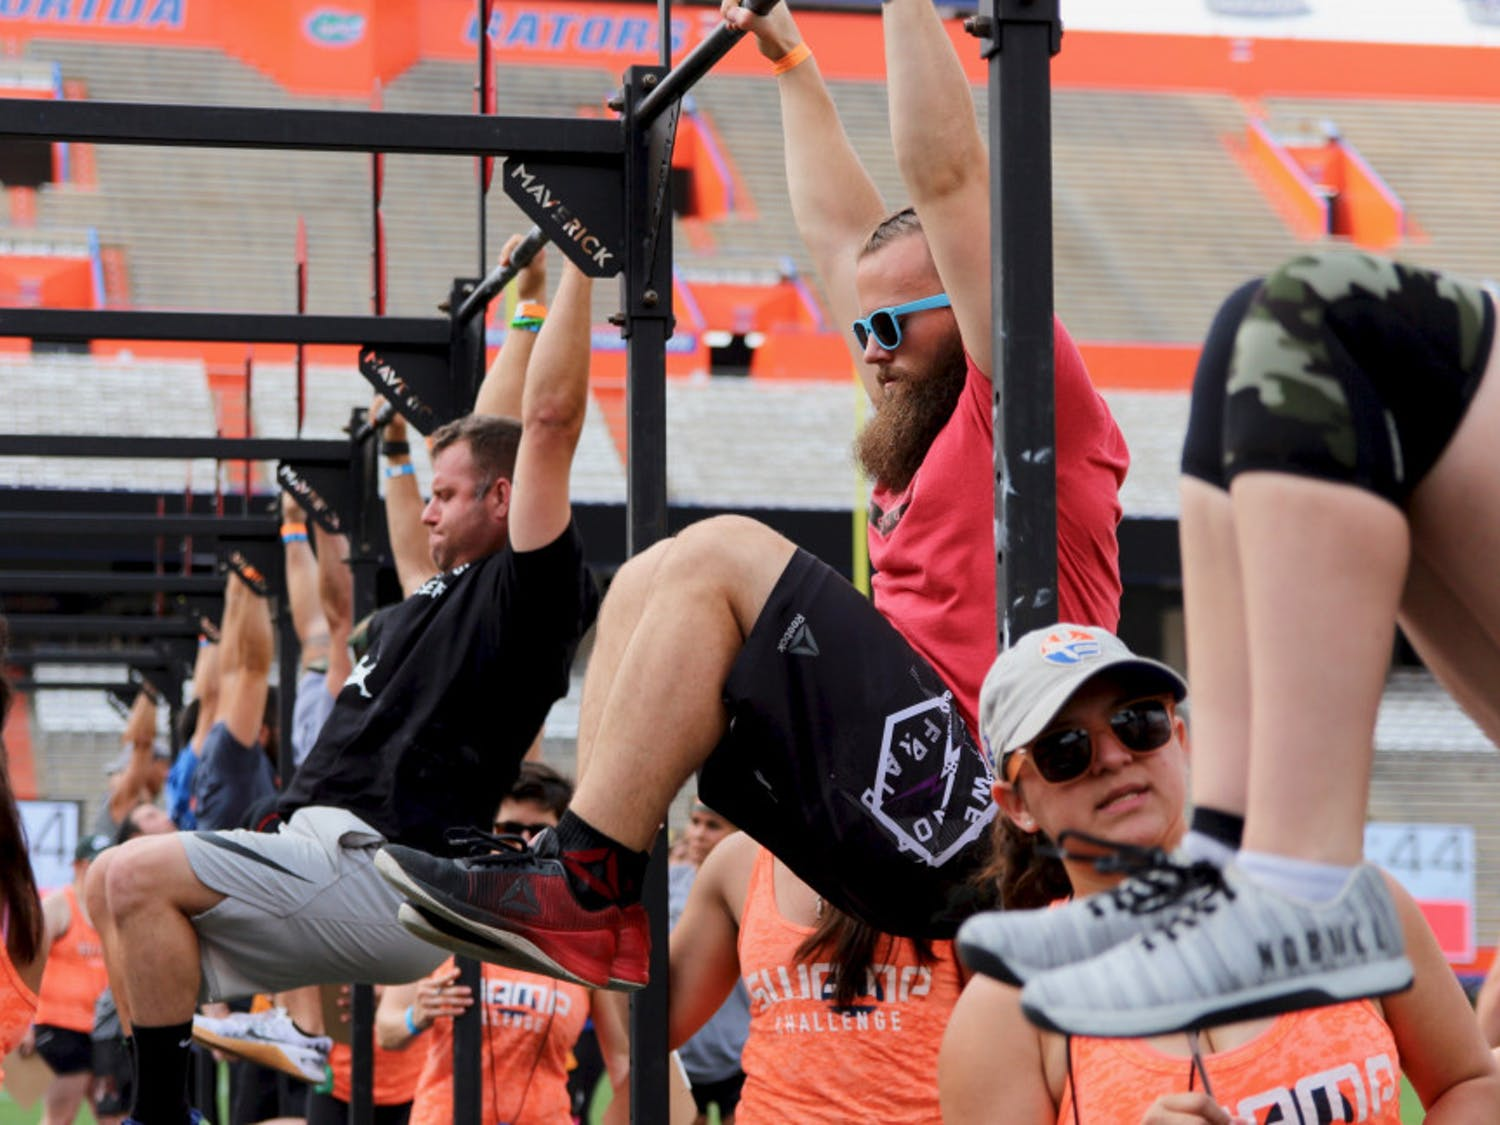 The 2018 Swamp Challenge, which celebrated its eighth year this past weekend, is the only CrossFit-style event to take place on an SEC field, according to their website. Hundreds of athletes participated in cardio, bodyweight and obstacle workouts at the one day event across three classes, Male/Male, Female/Female and co-ed, and three divisions, Masters, Scaled and RX.